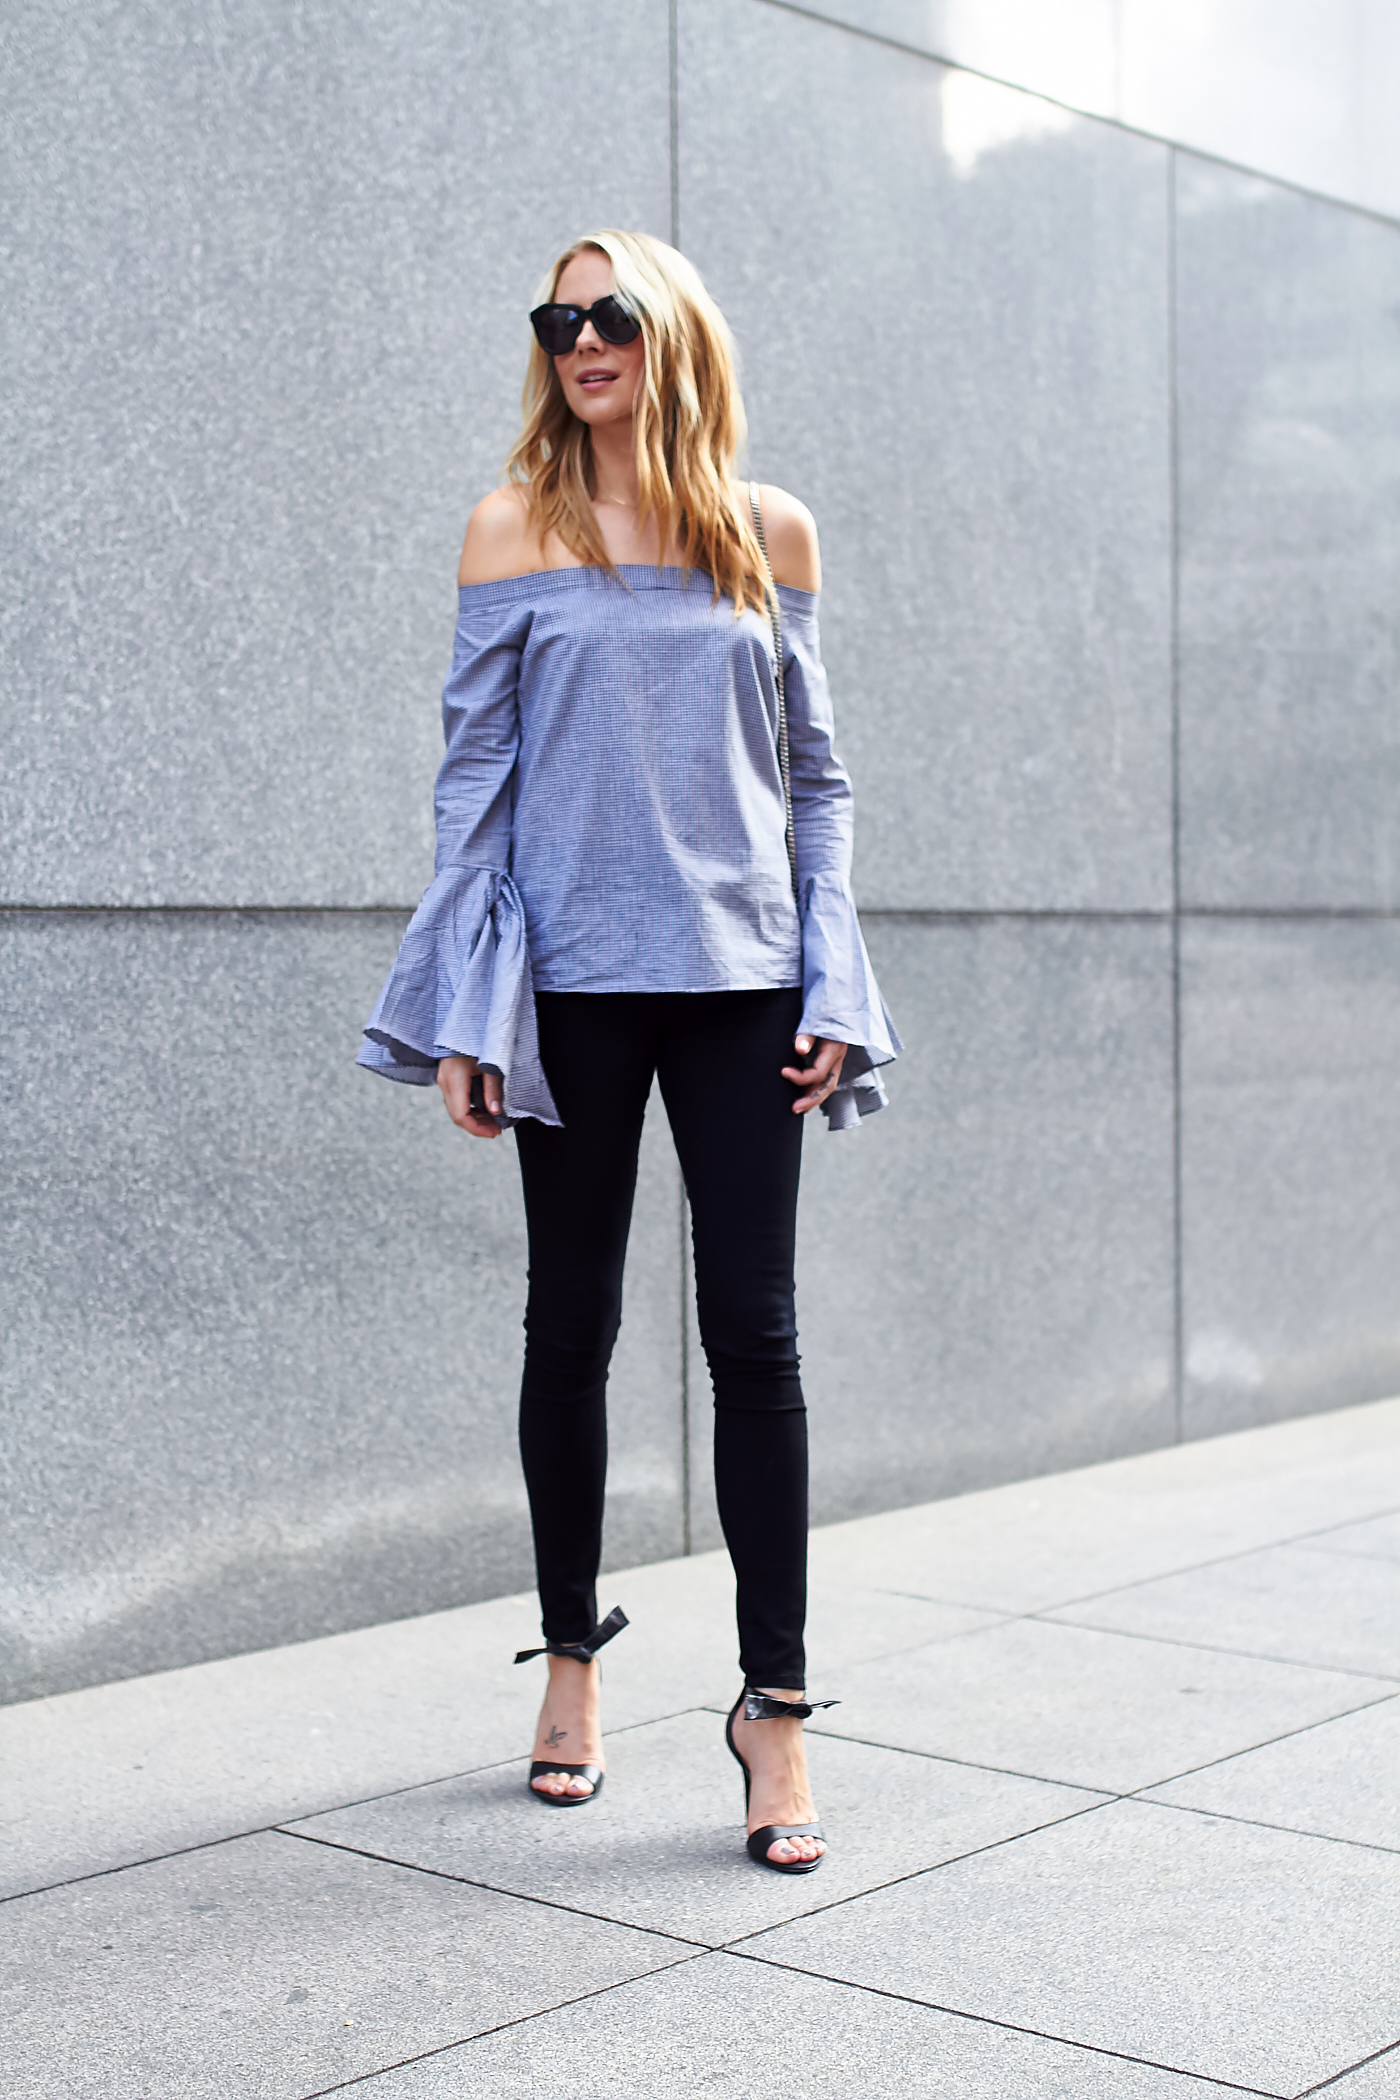 fashion-jackson-bell-sleeve-off-the-shoulder-top-black-skinny-jeans-black-bow-heels